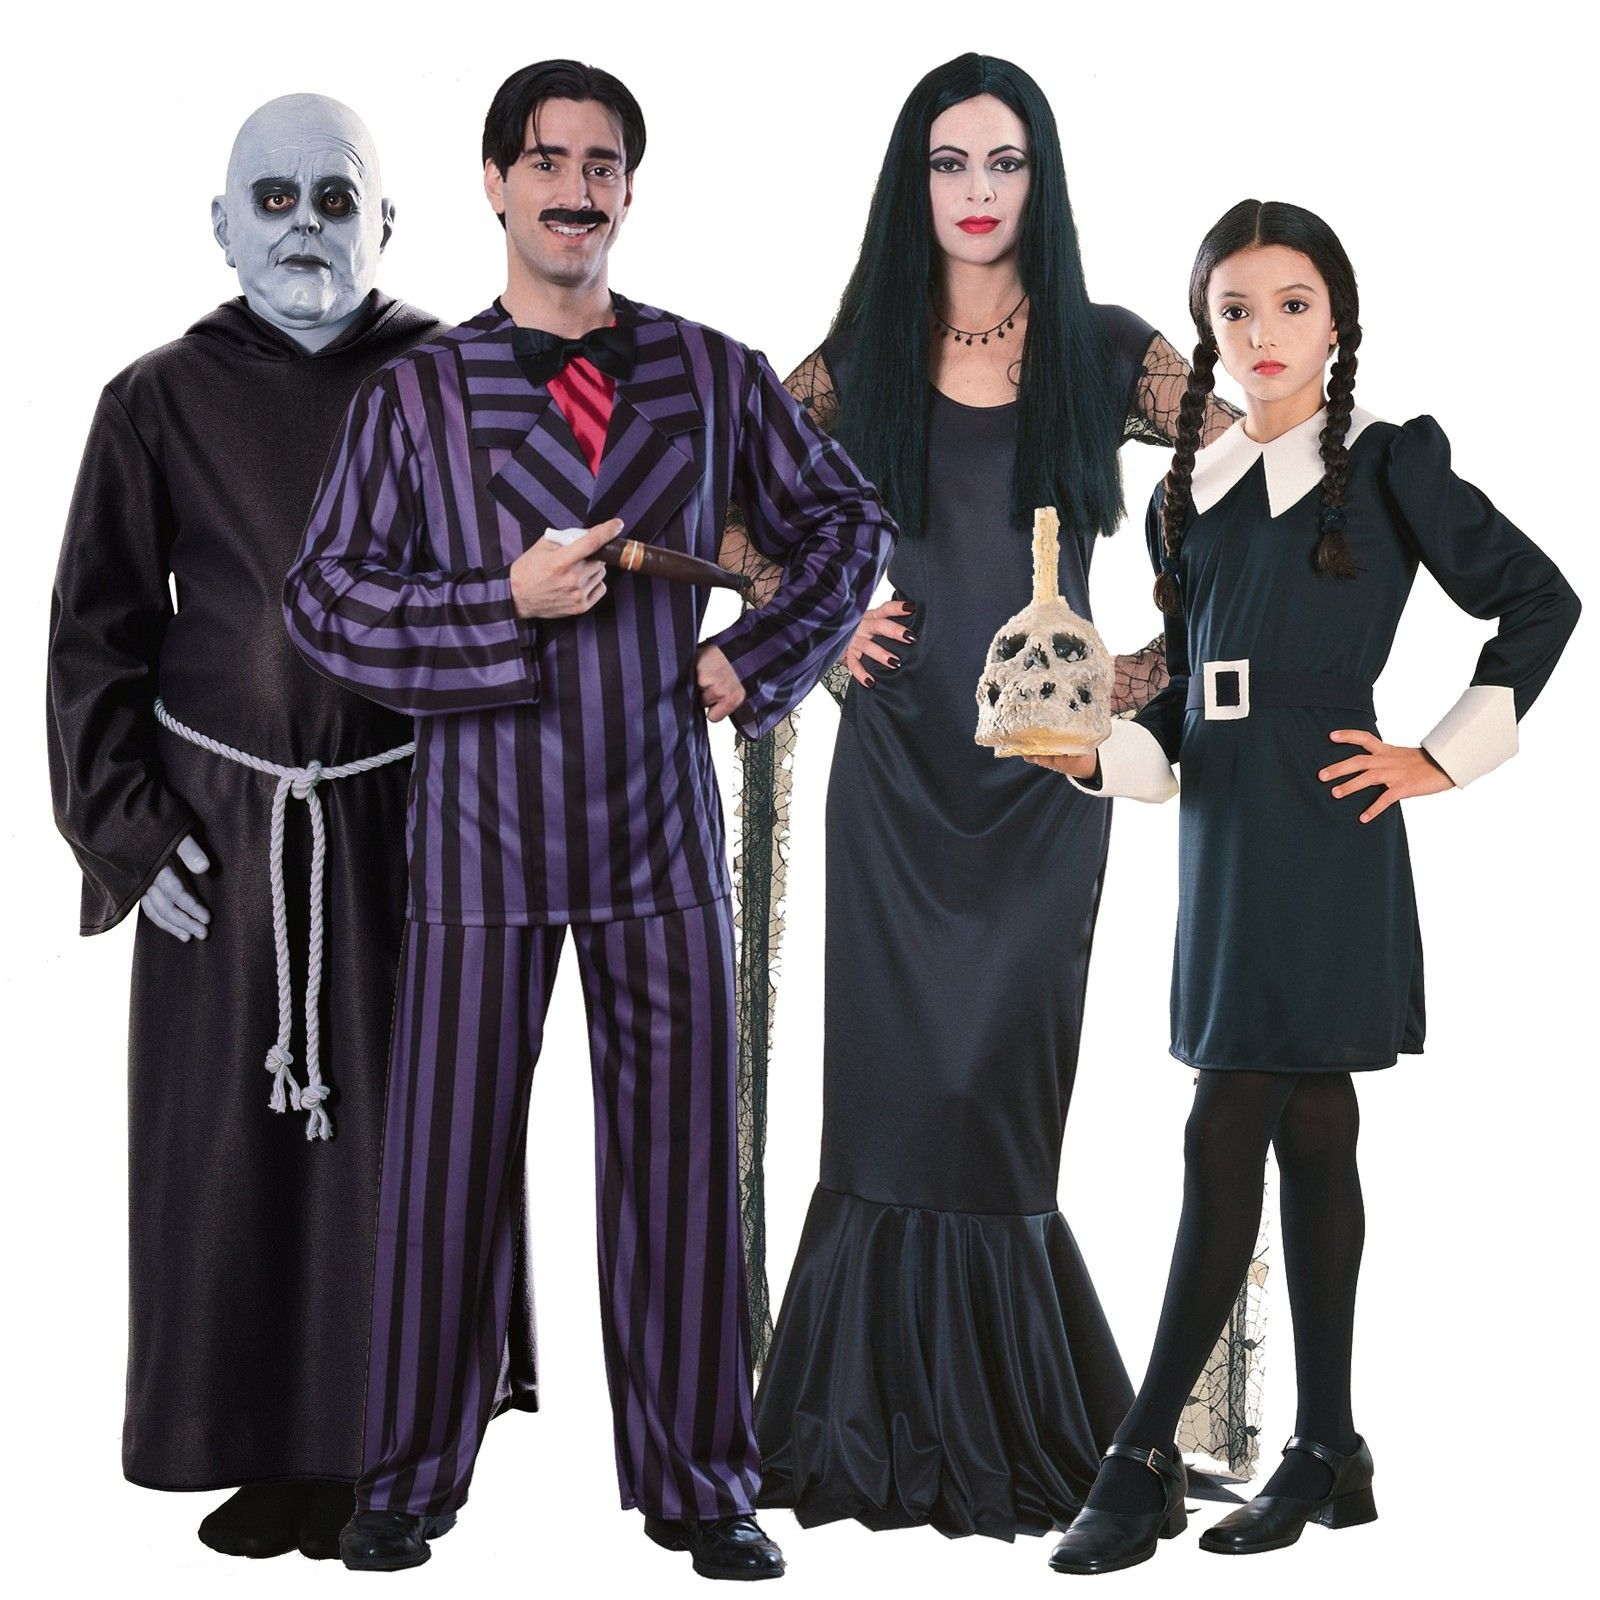 The Addams Family Group Costumes 804855 | Halloween | Pinterest ...